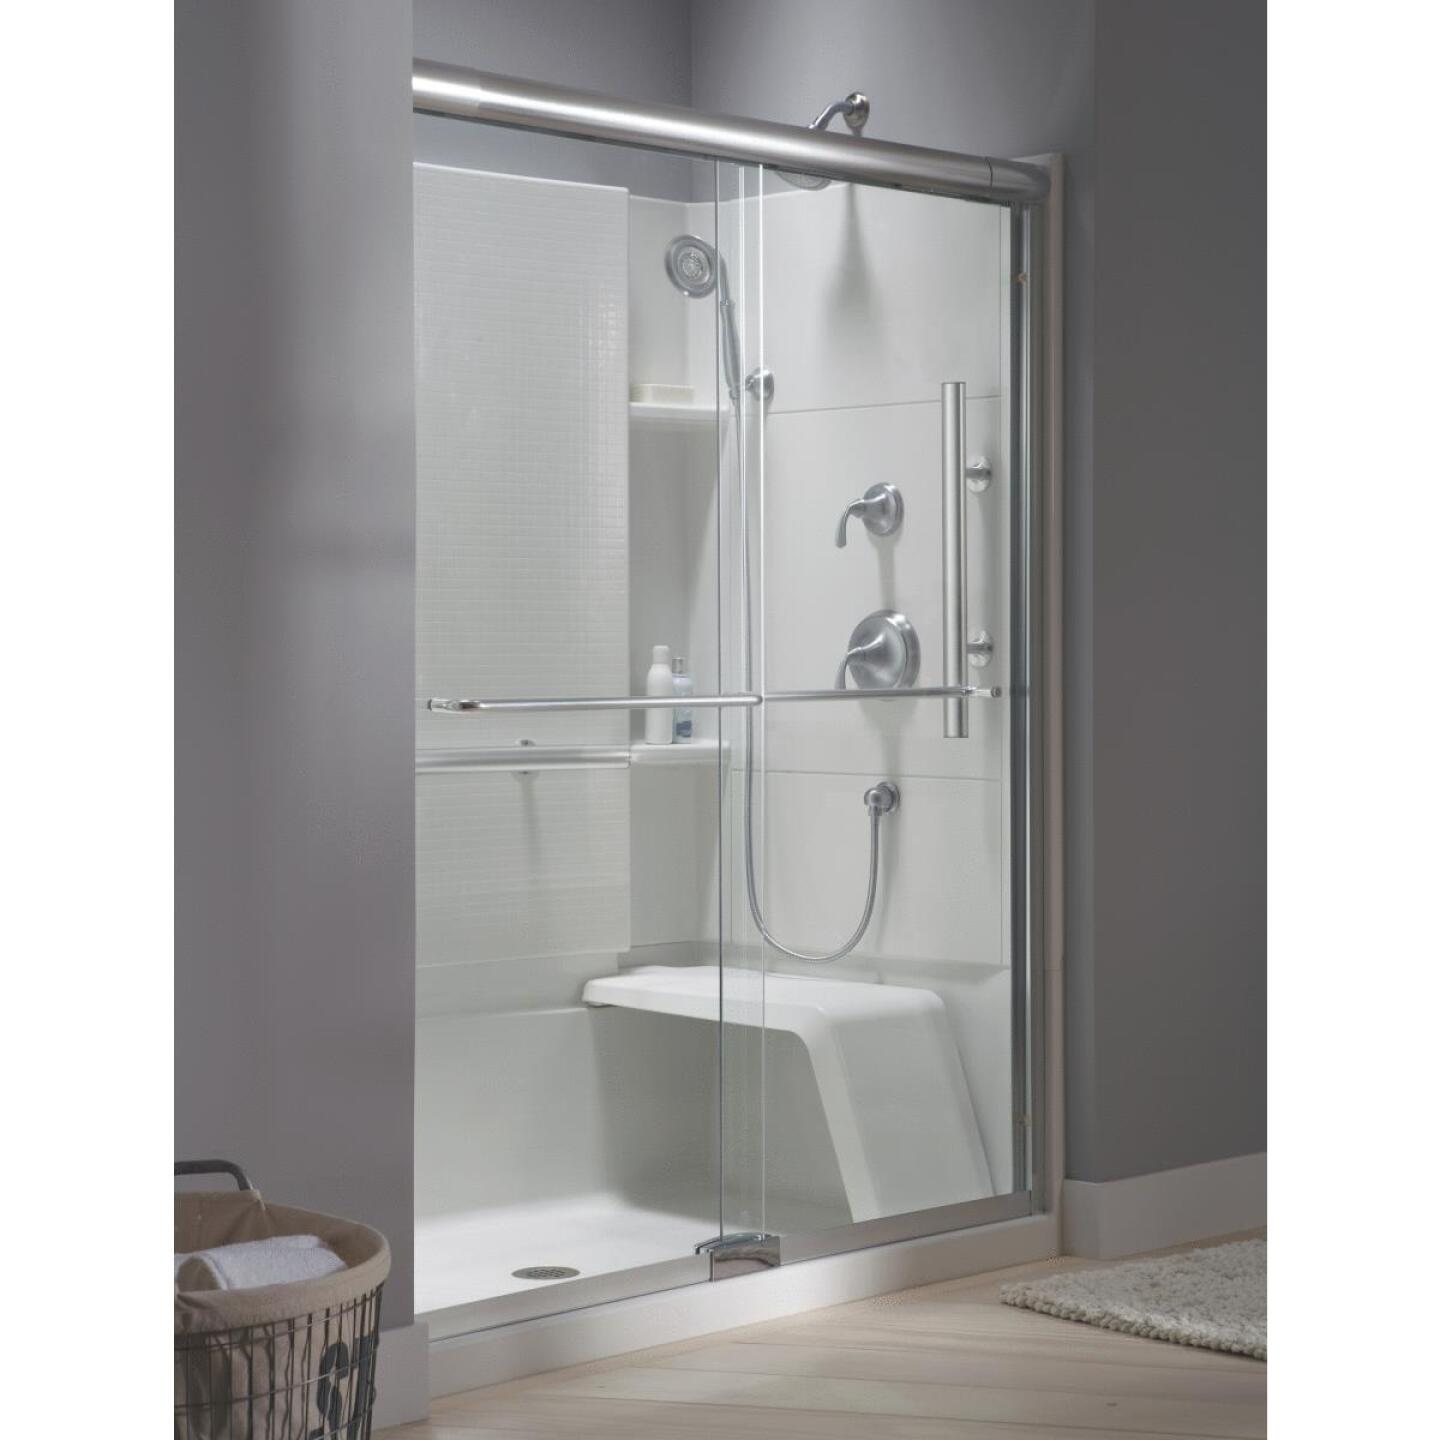 Sterling Accord 48 In. W x 36 In. D Center Drain Seated Shower Floor & Base in White Image 3